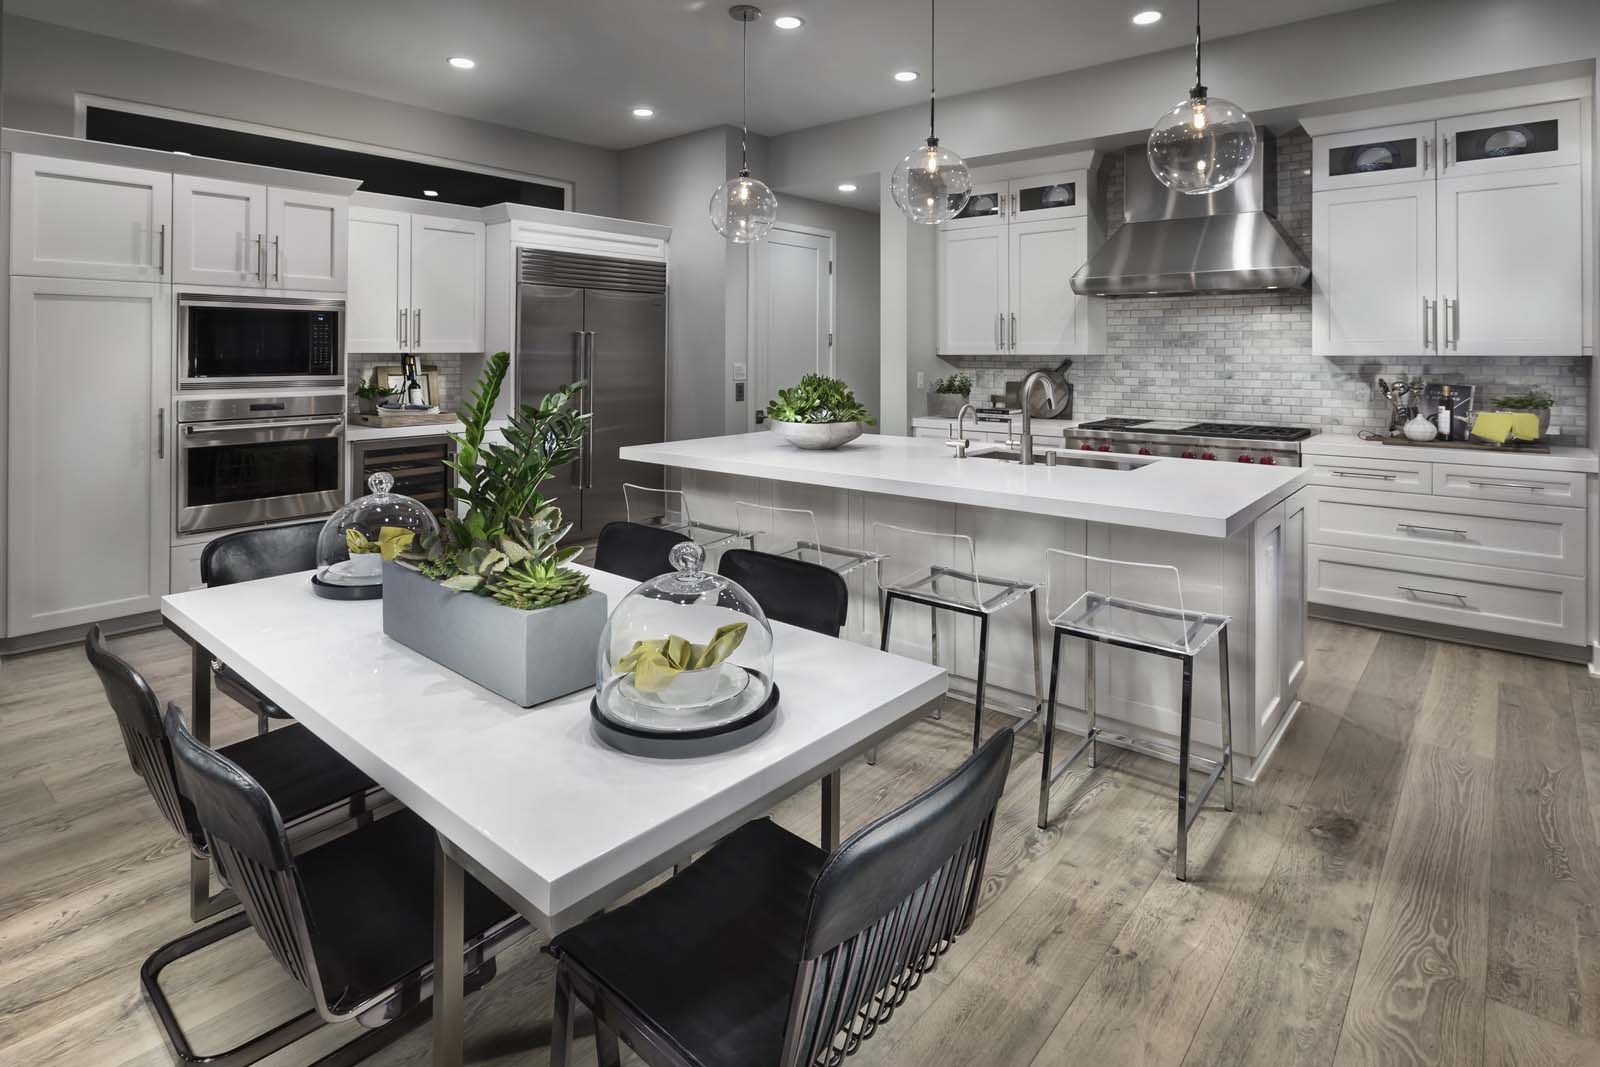 Chef Kitchen in Los Angles Detached Homes for Sale